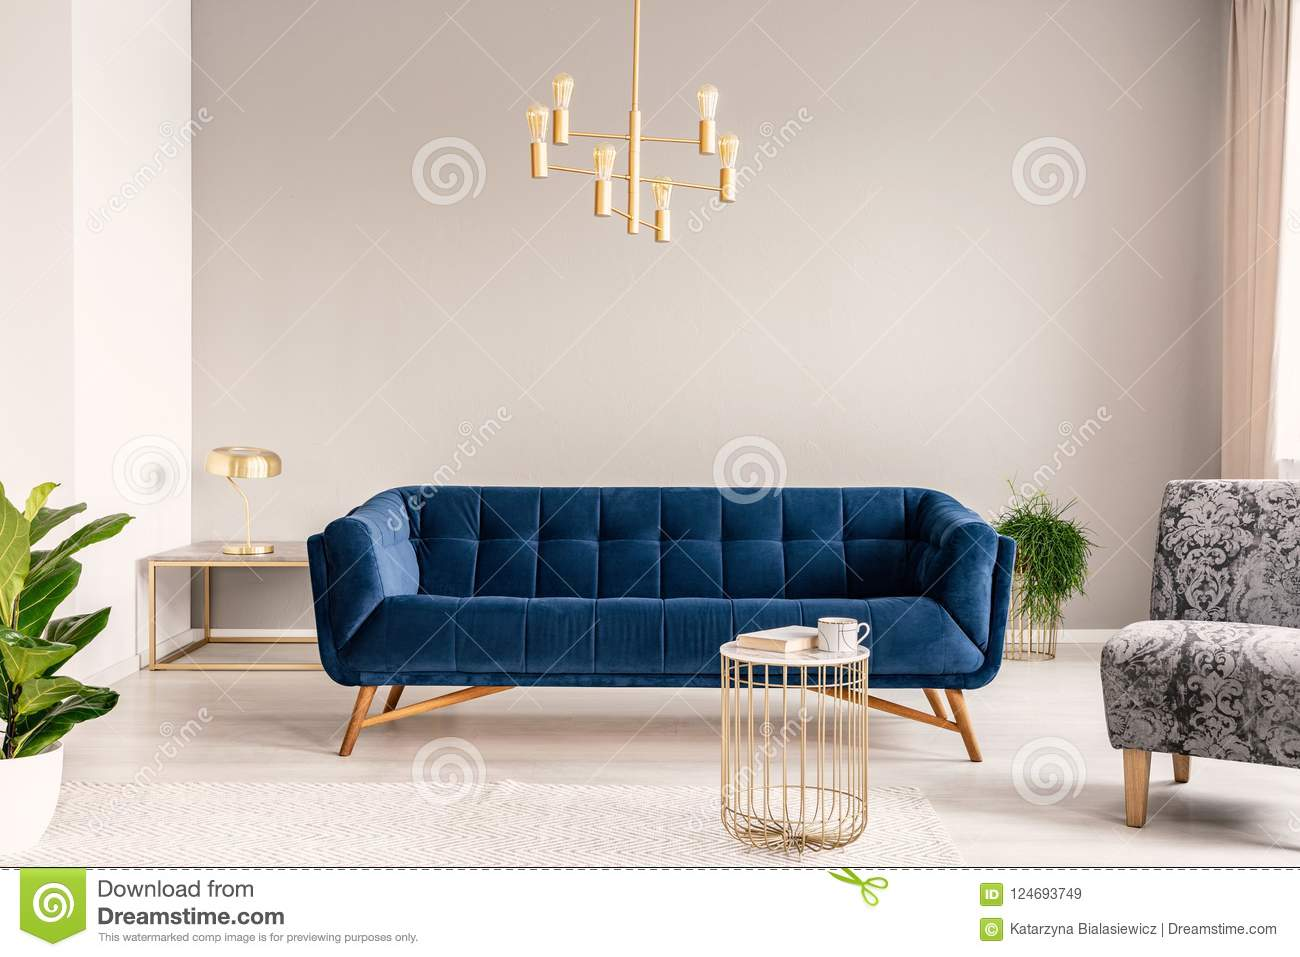 Gold Lamp Hanging Above Royal Blue Sofa In Real Photo Of Light Grey Sitting Room Interior With Empty Wall Stock Image Image Of Armchair Apartment 124693749